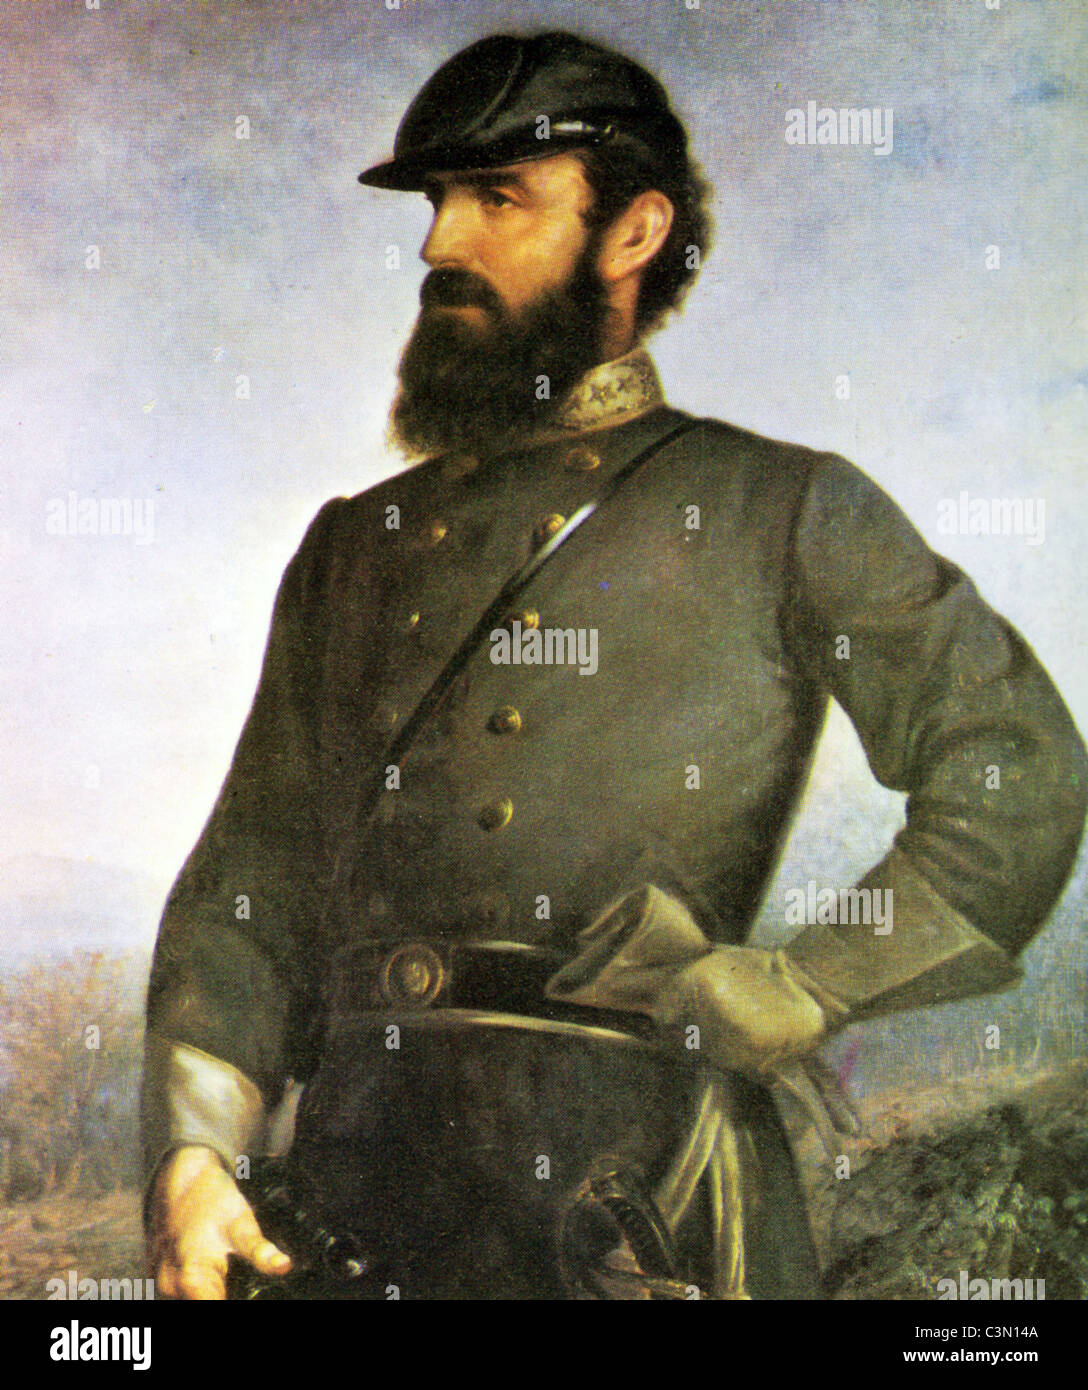 THOMAS 'STONEWALL' JACKSON (1824-1863) Confederate general during the American Civil War - Stock Image